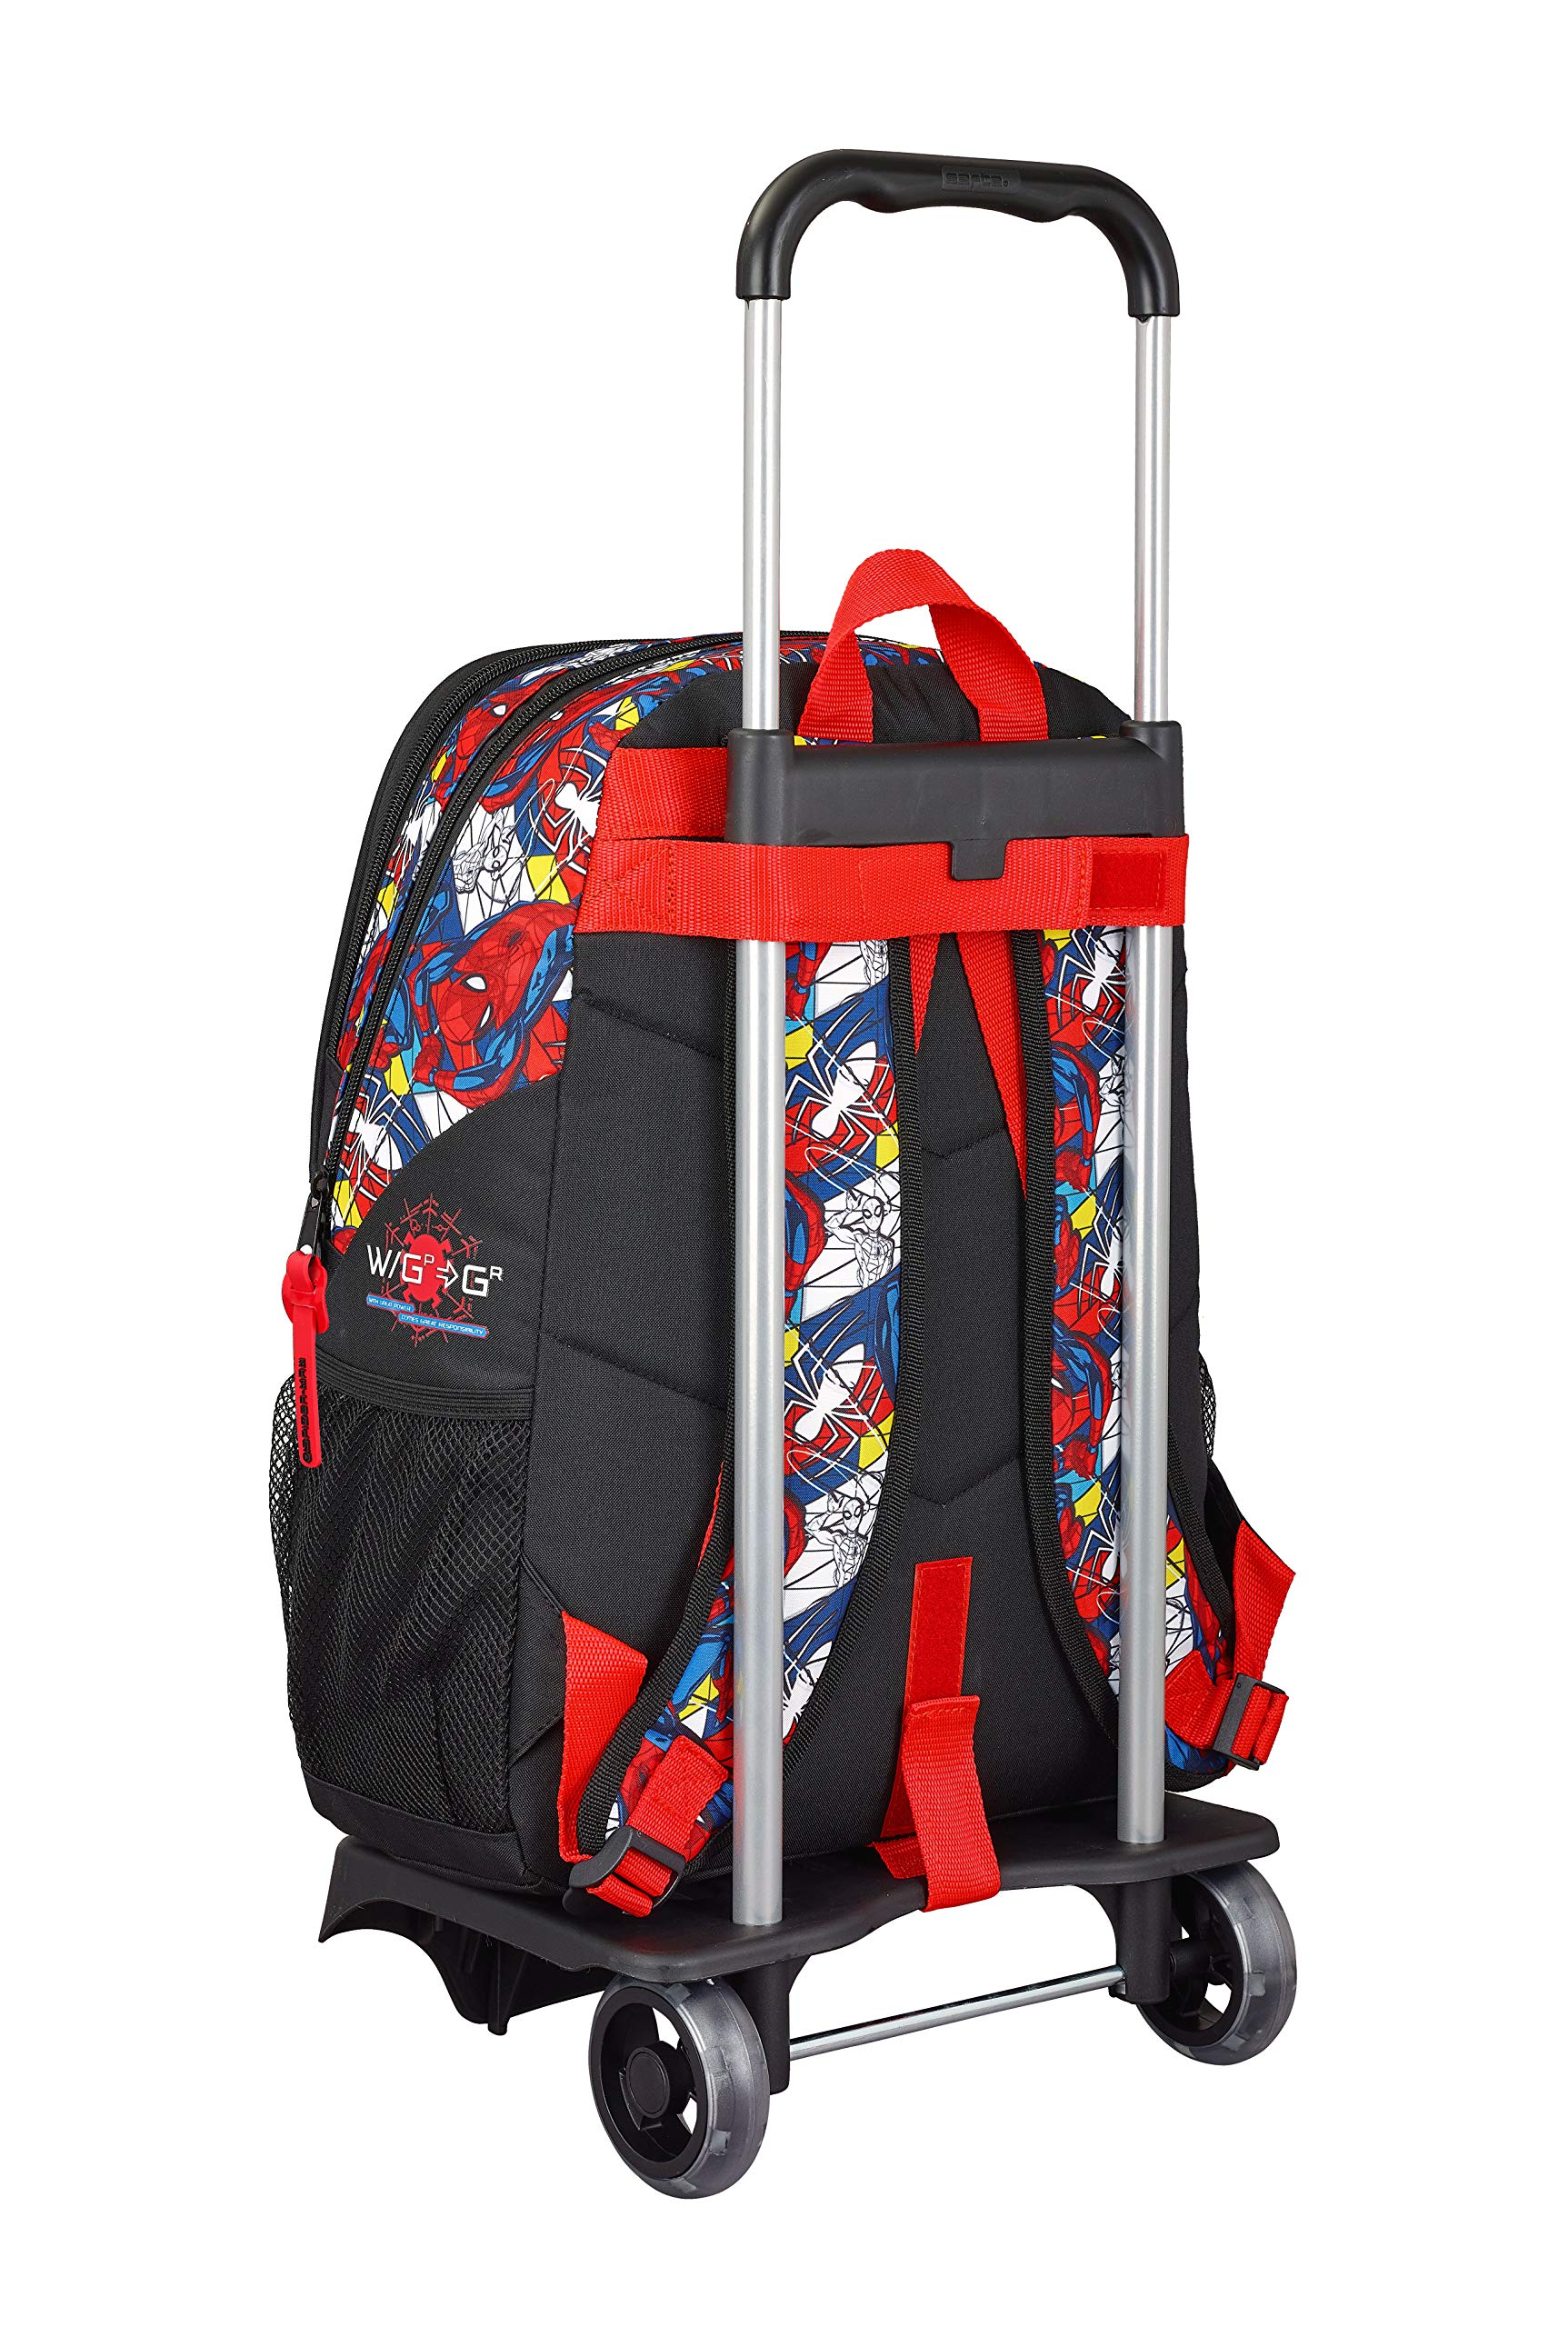 Spiderman Mochila grande con carro, trolley